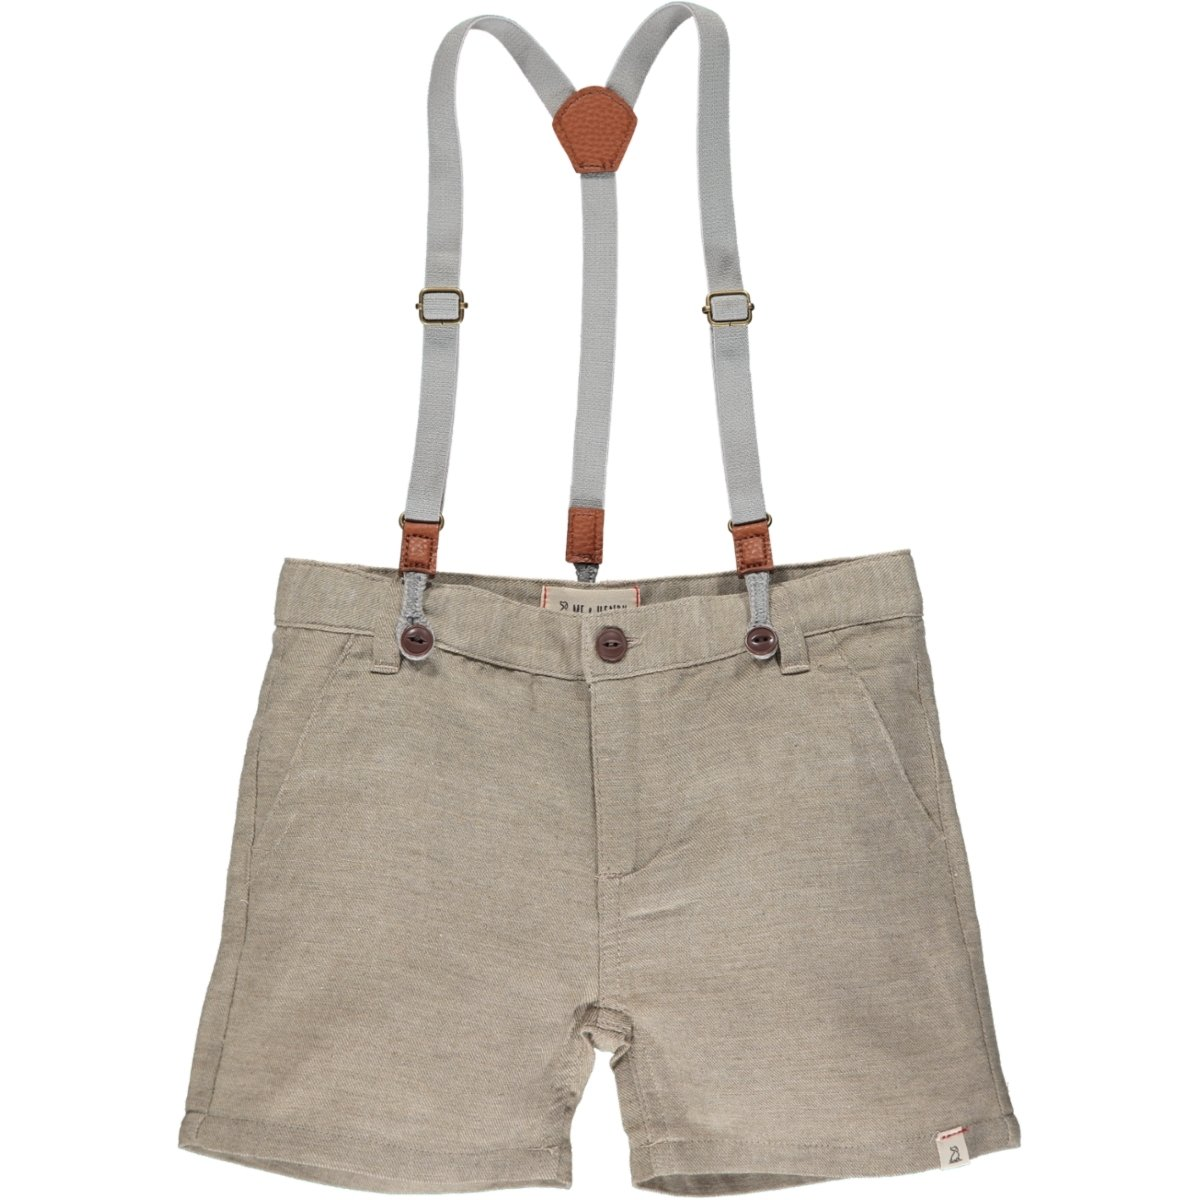 Captain Shorts with Suspenders in Beige by Me + Henry